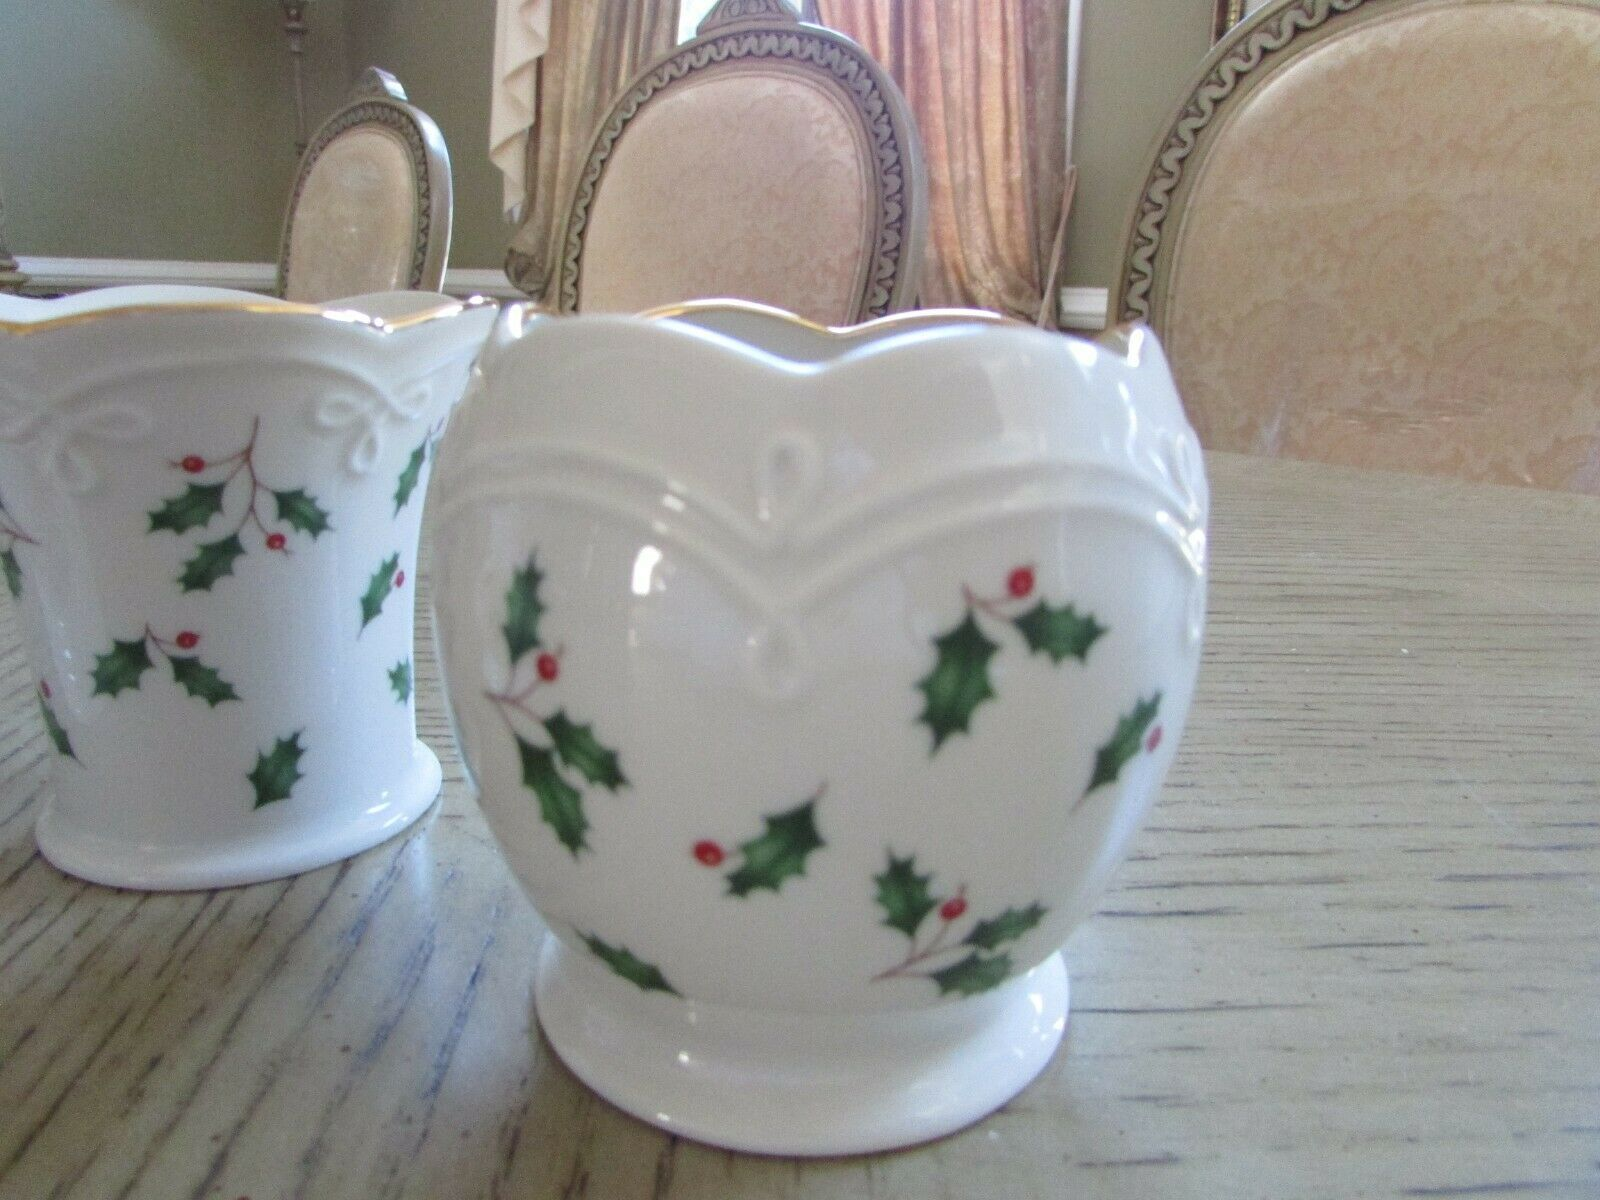 LENOX HOLIDAY DIMENSION COLLECTION SET OF 3 TEALIGHT CANDLE HOLDERS HOLLY BERRY